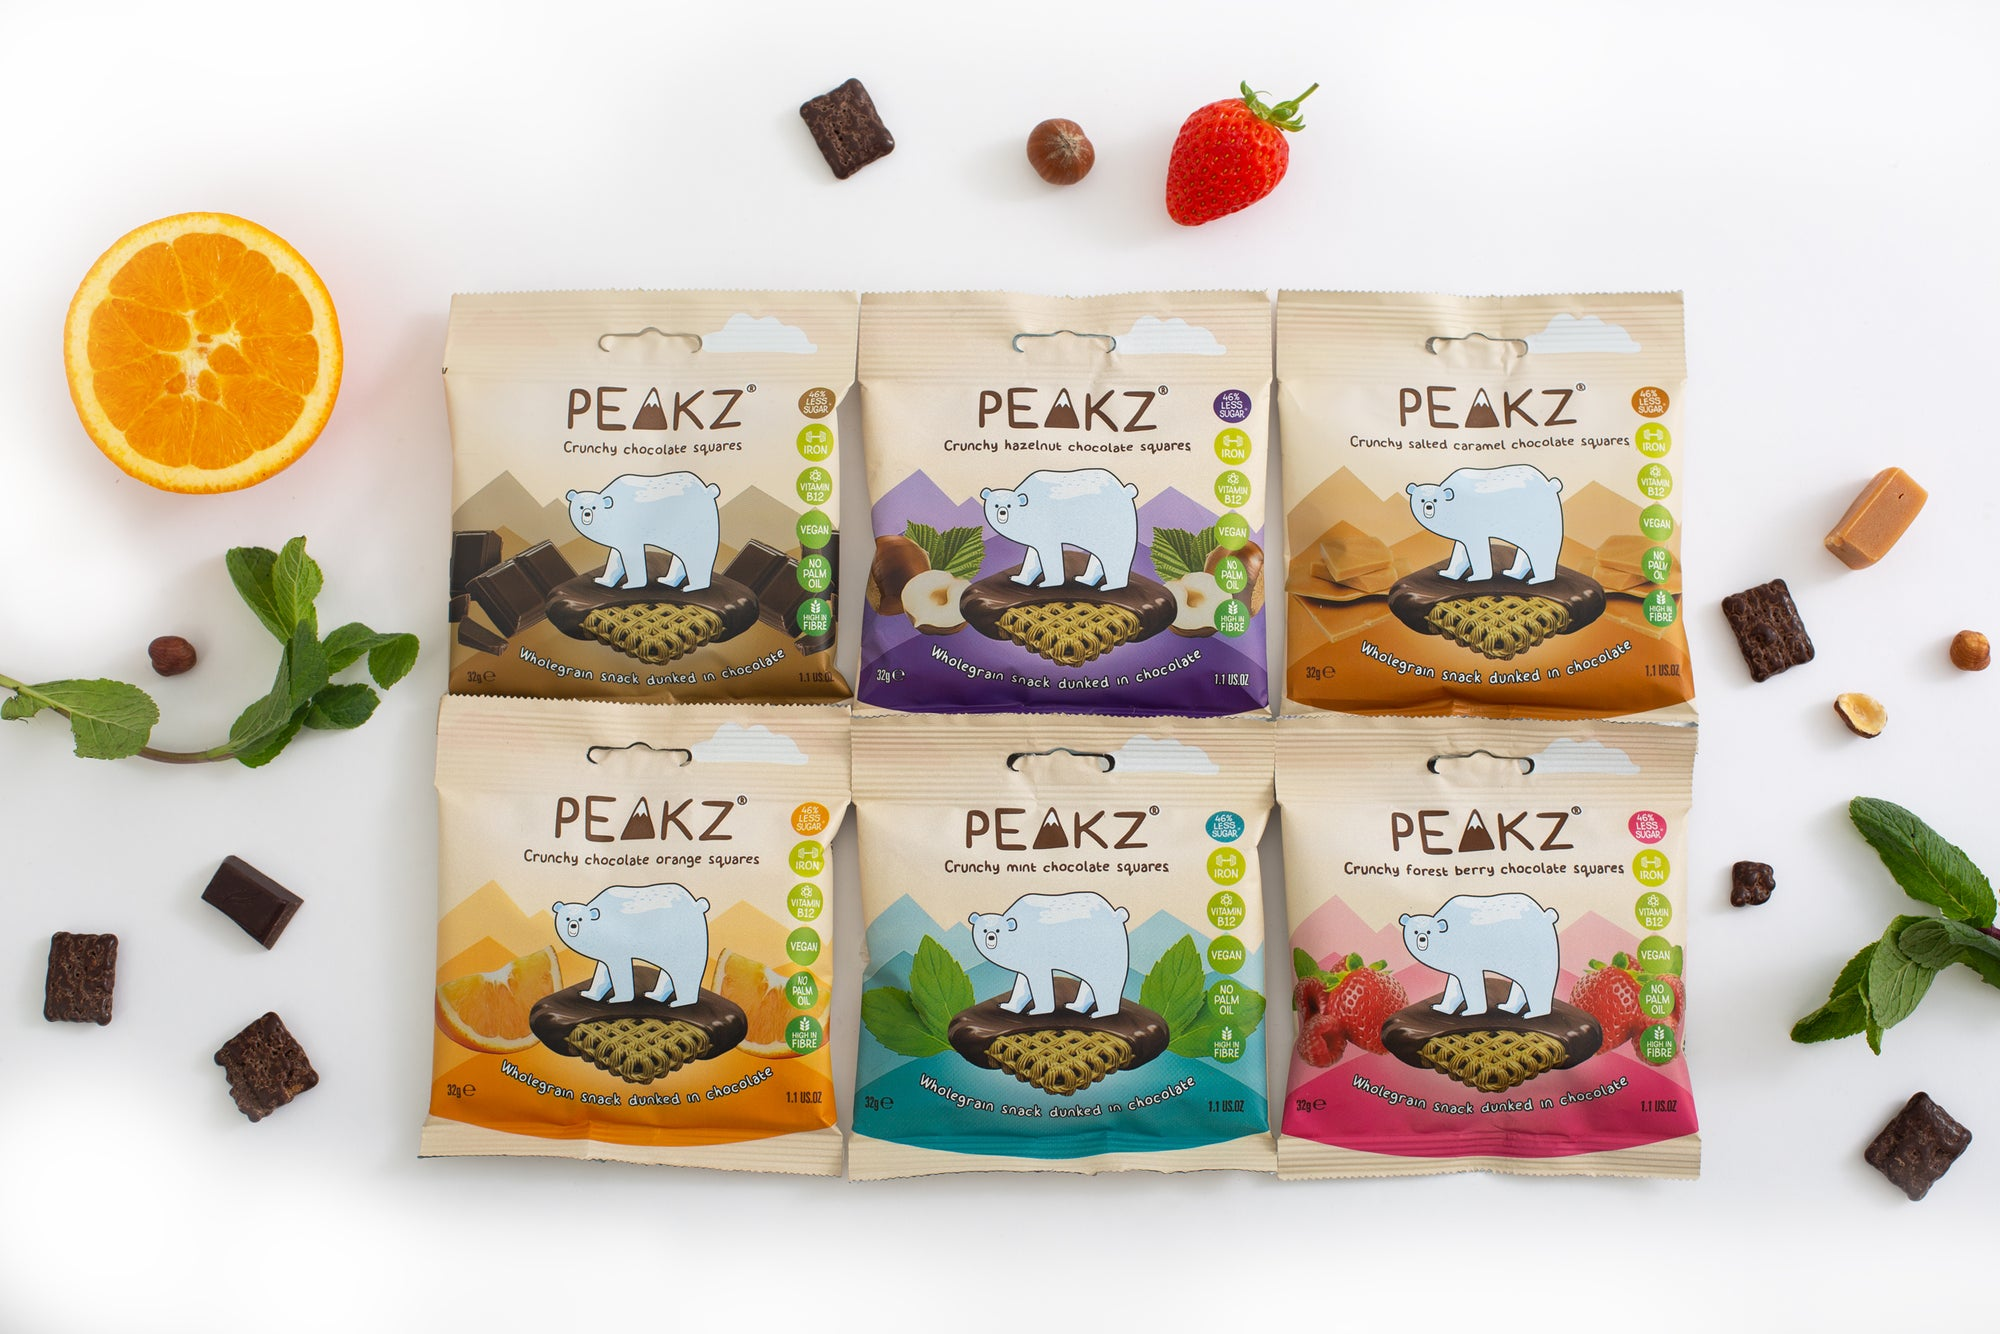 Peakz healthy vegan treats available in our healthy snack boxes